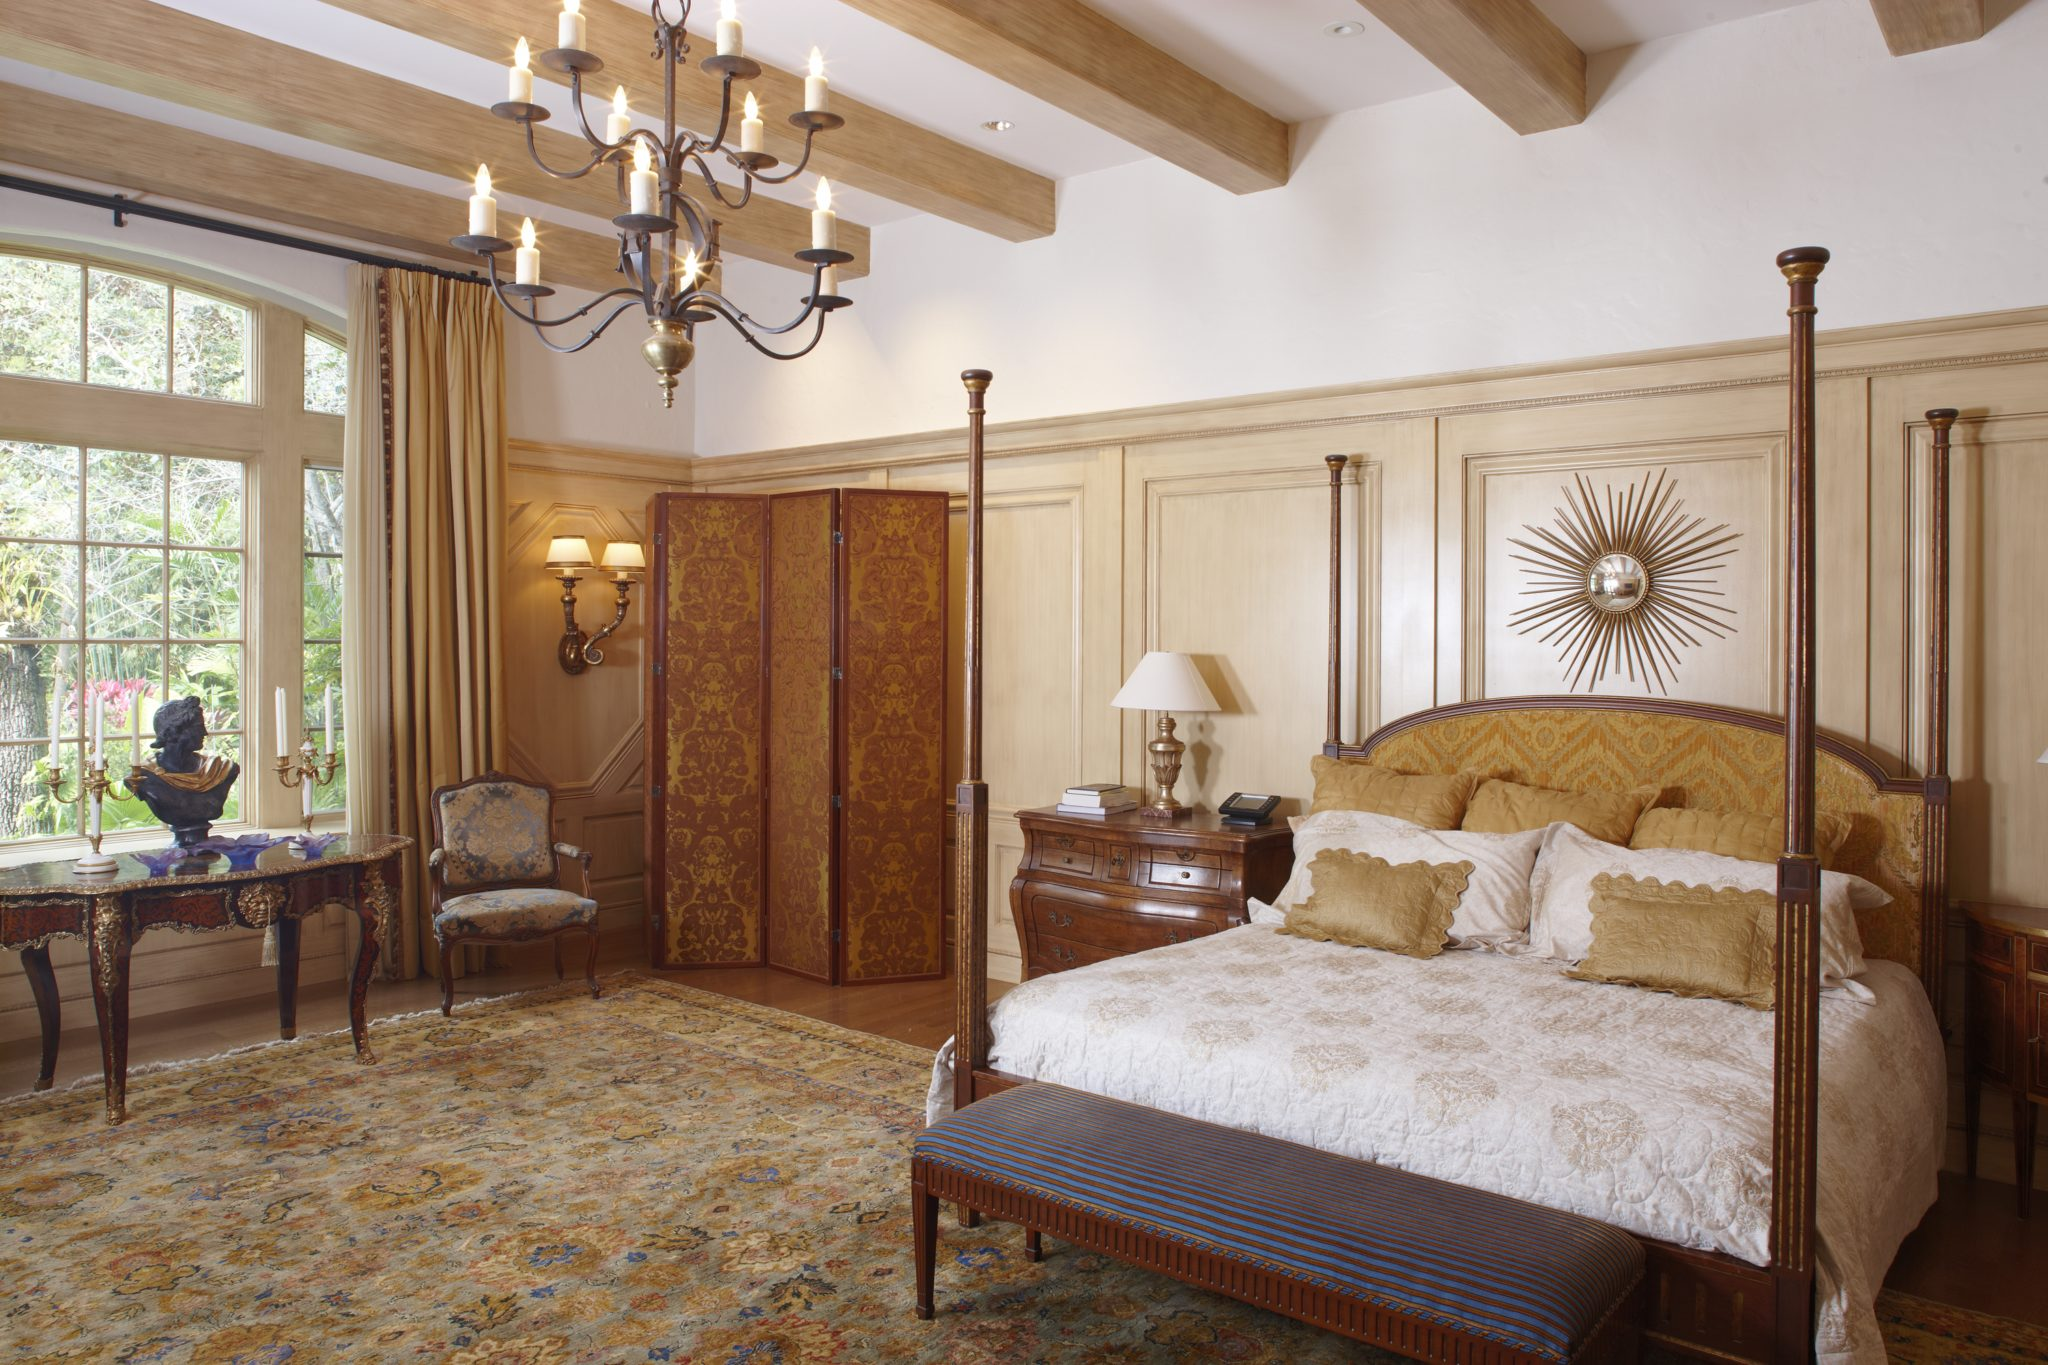 French Provincial- Millwork. Beamed ceiling and over scaled wainscotting by Gonzalez-Abreu | Alas Architects (GAA)